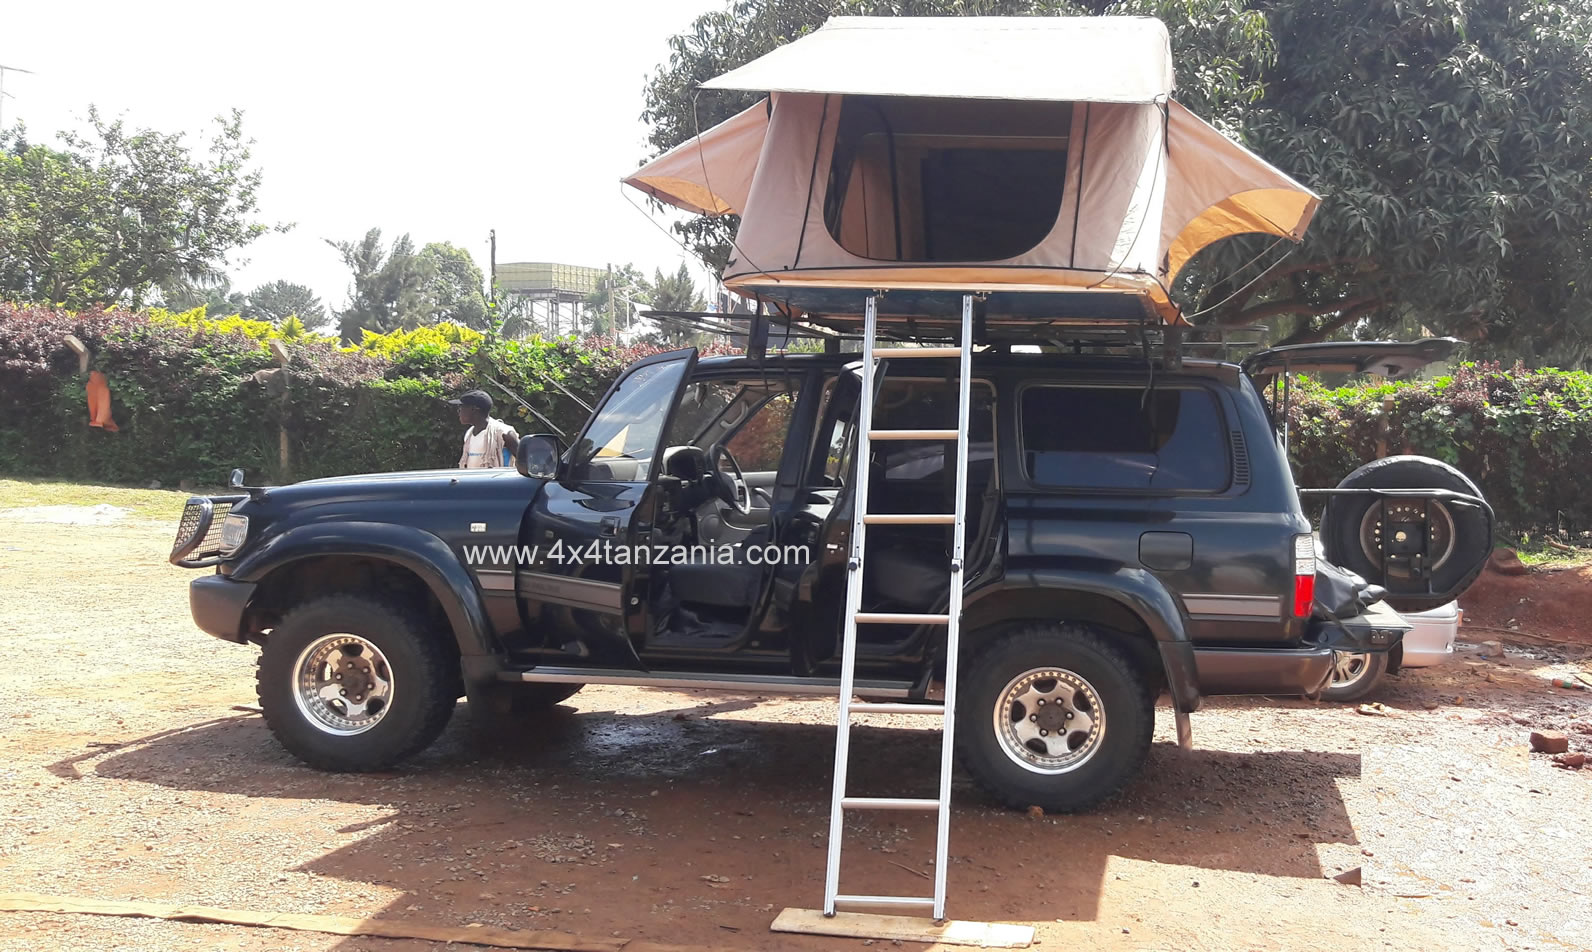 Moel 1996 Land Cruiser Vx with A Rooftop Tent